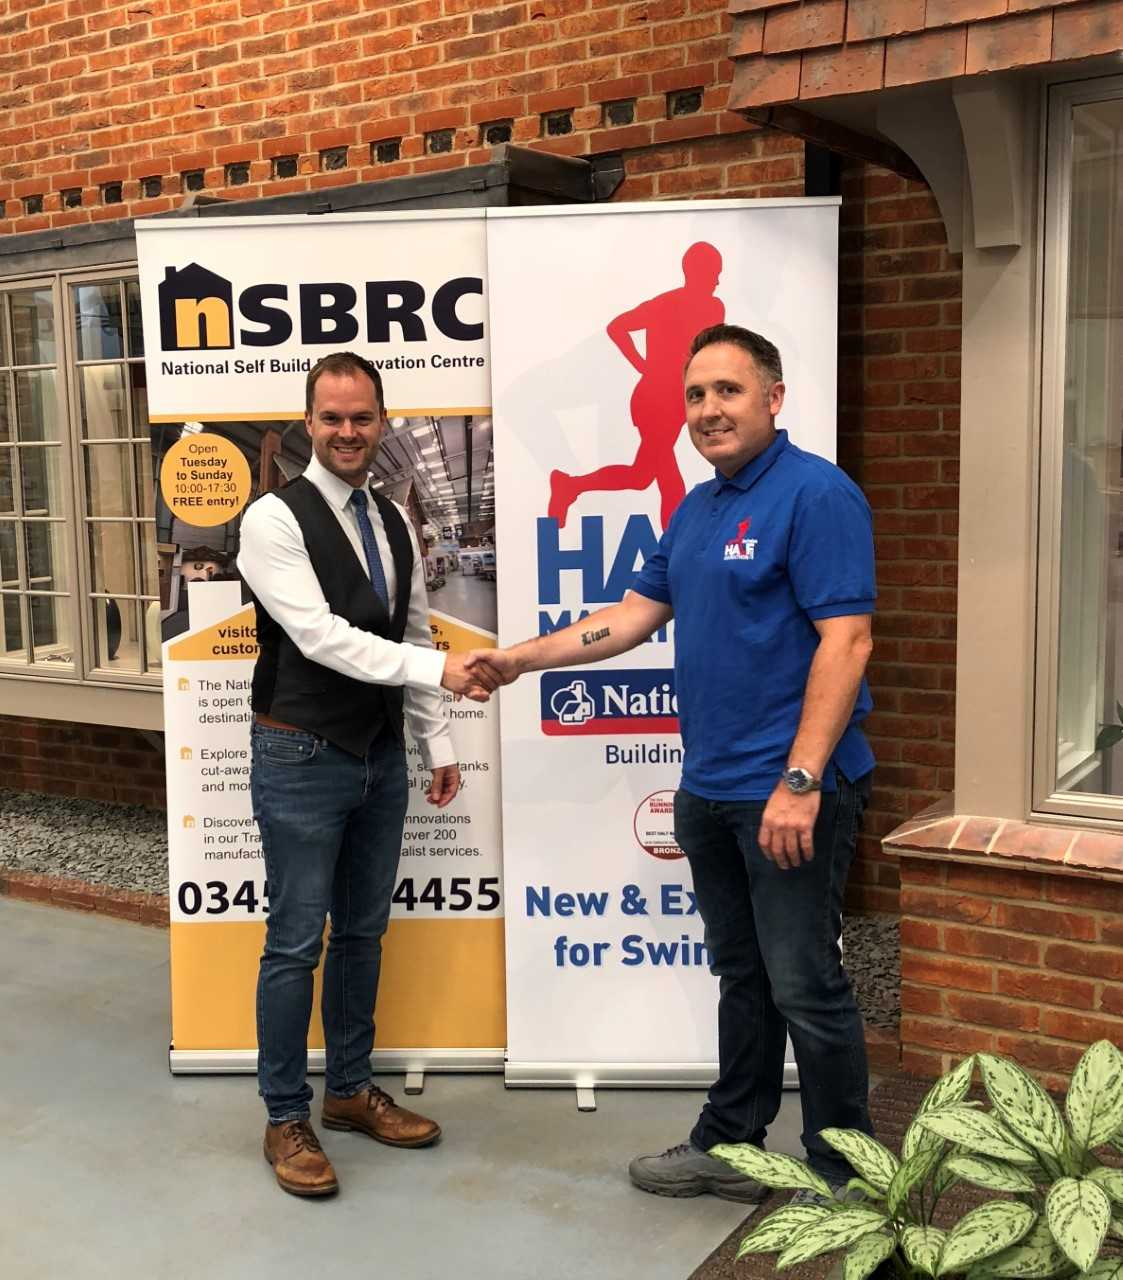 NSBRC BECOMES FIRST OFFICIAL SPONSOR OF THE 2018 NATIONWIDE NEW SWINDON HALF MARATHON